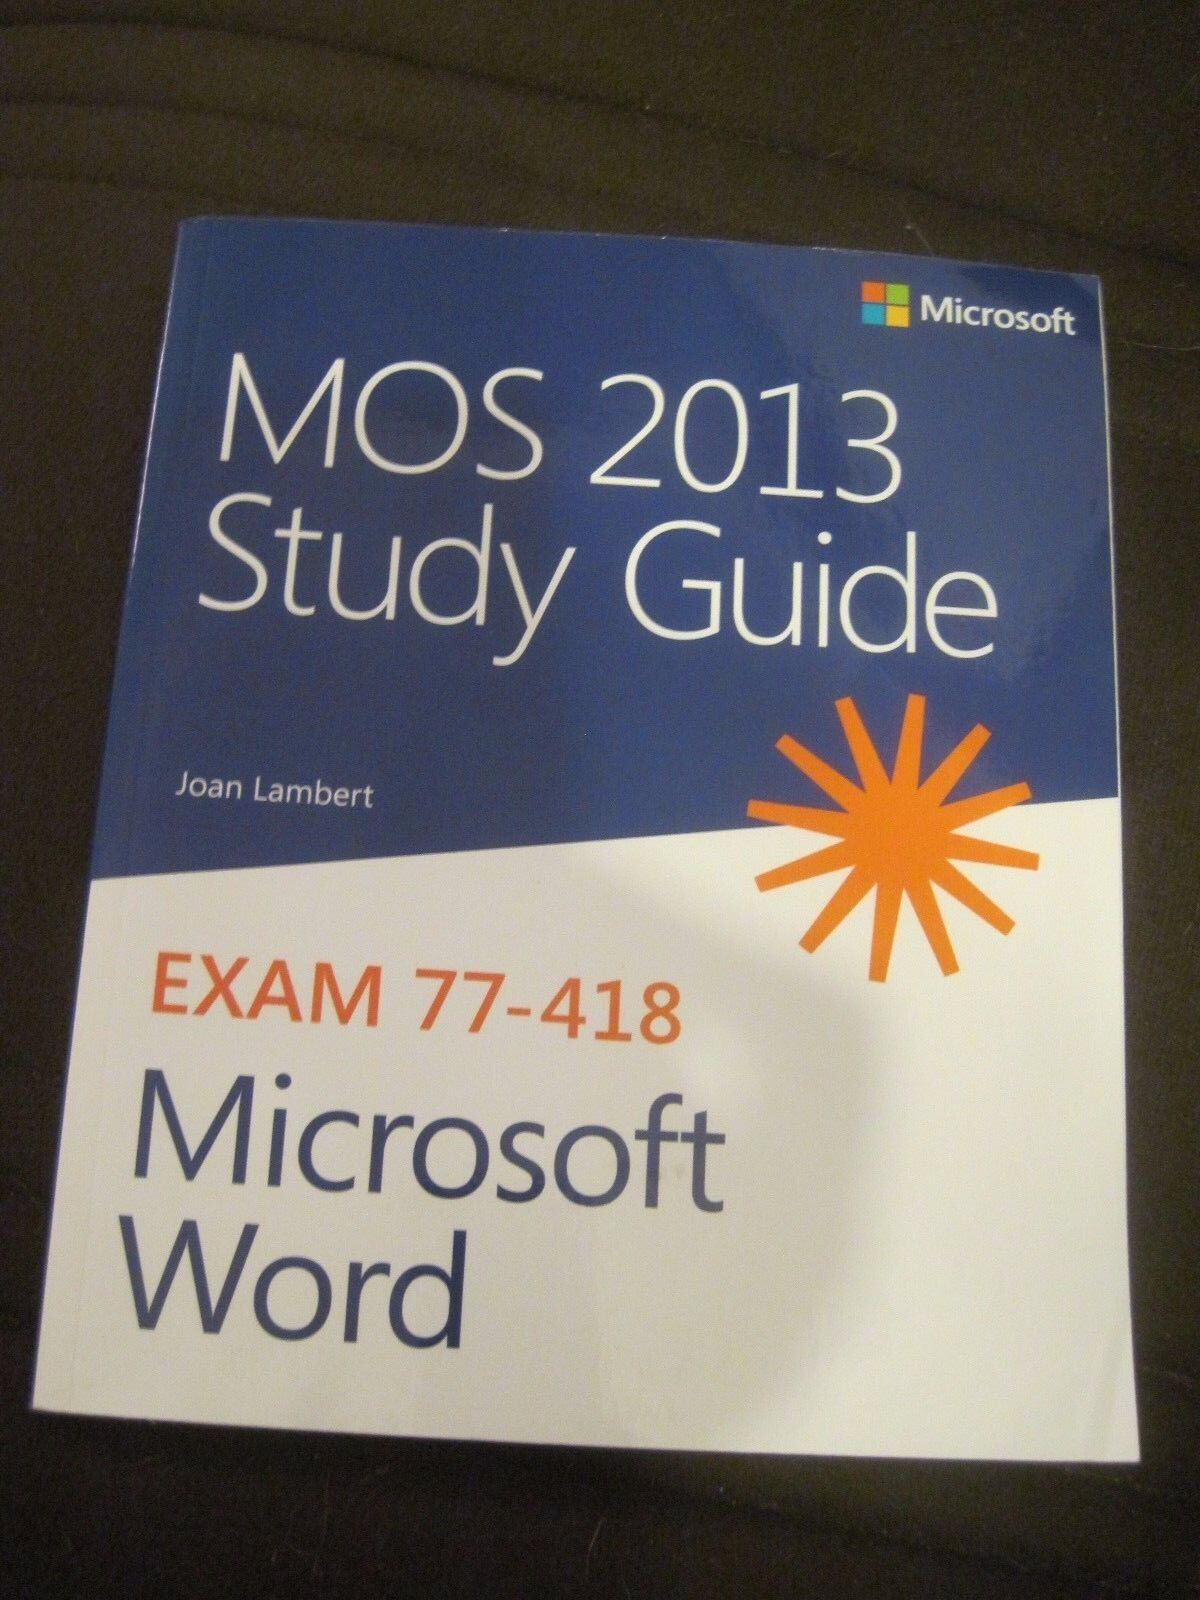 MOS Study Guide: MOS 2013 Study Guide for Microsoft Word by Joan, III  Lambert (2013, Paperback, New Edition) | eBay